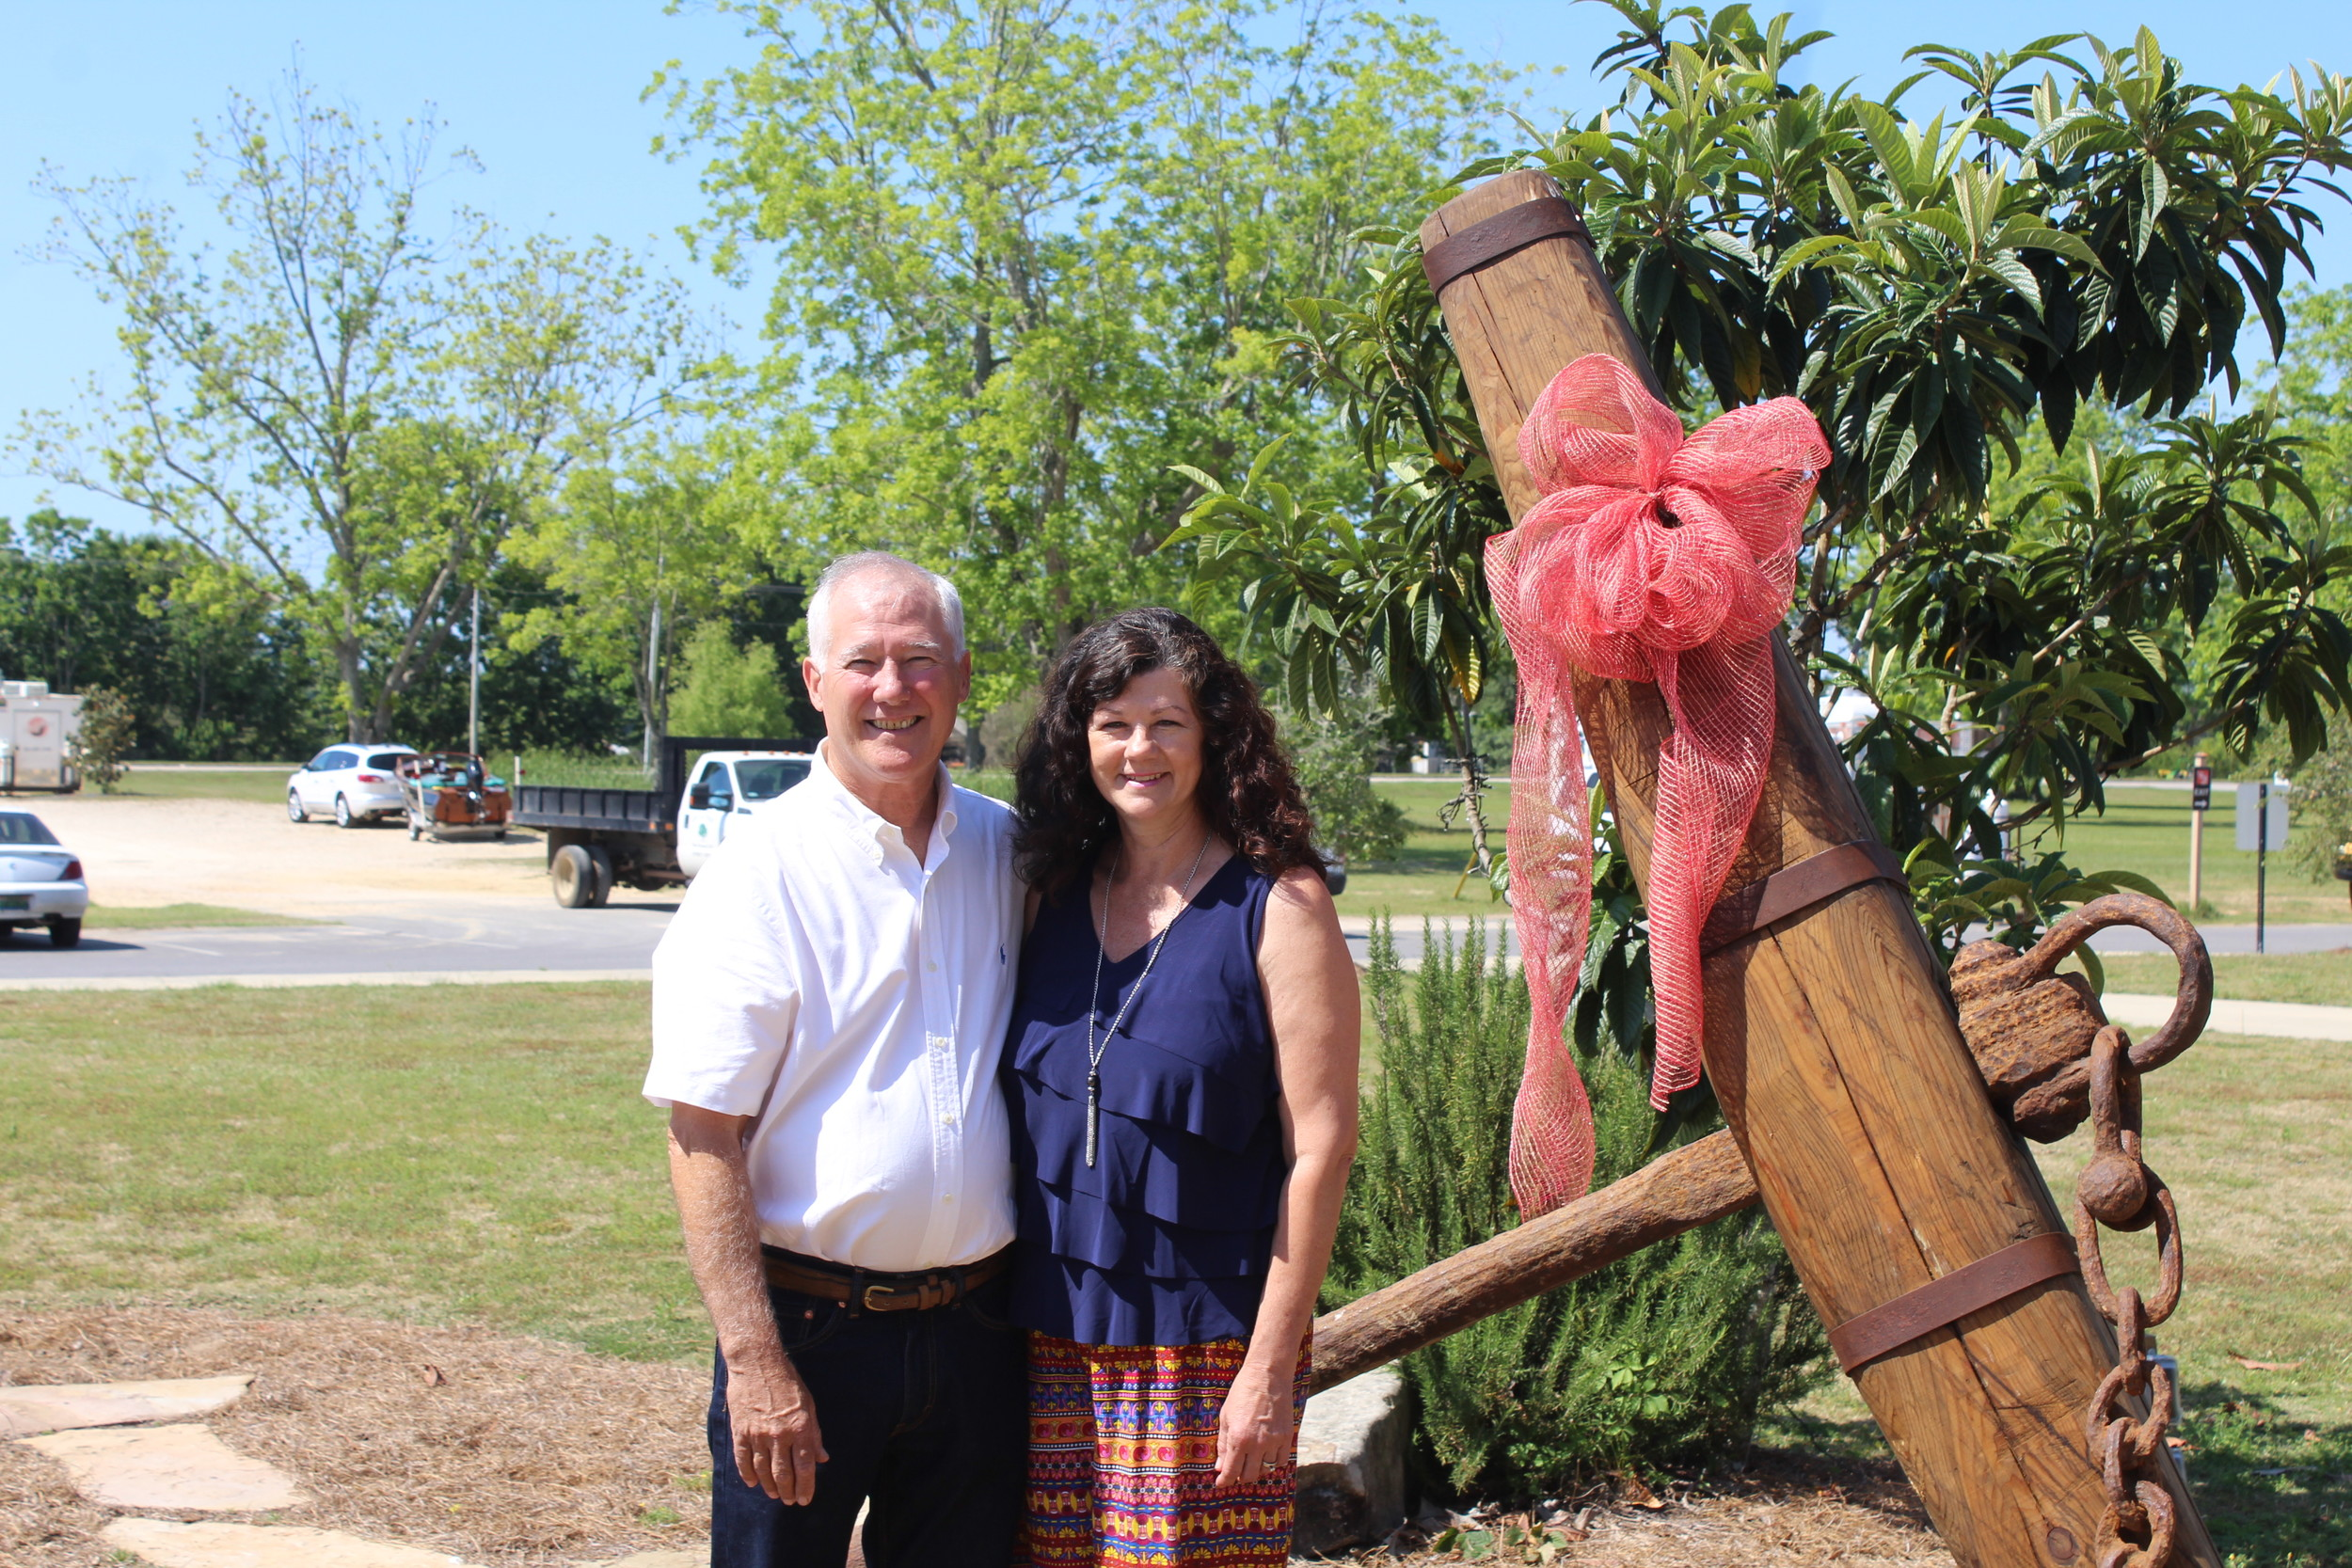 Jeff and Tammy Forland, who donated the anchor to the City of Foley.